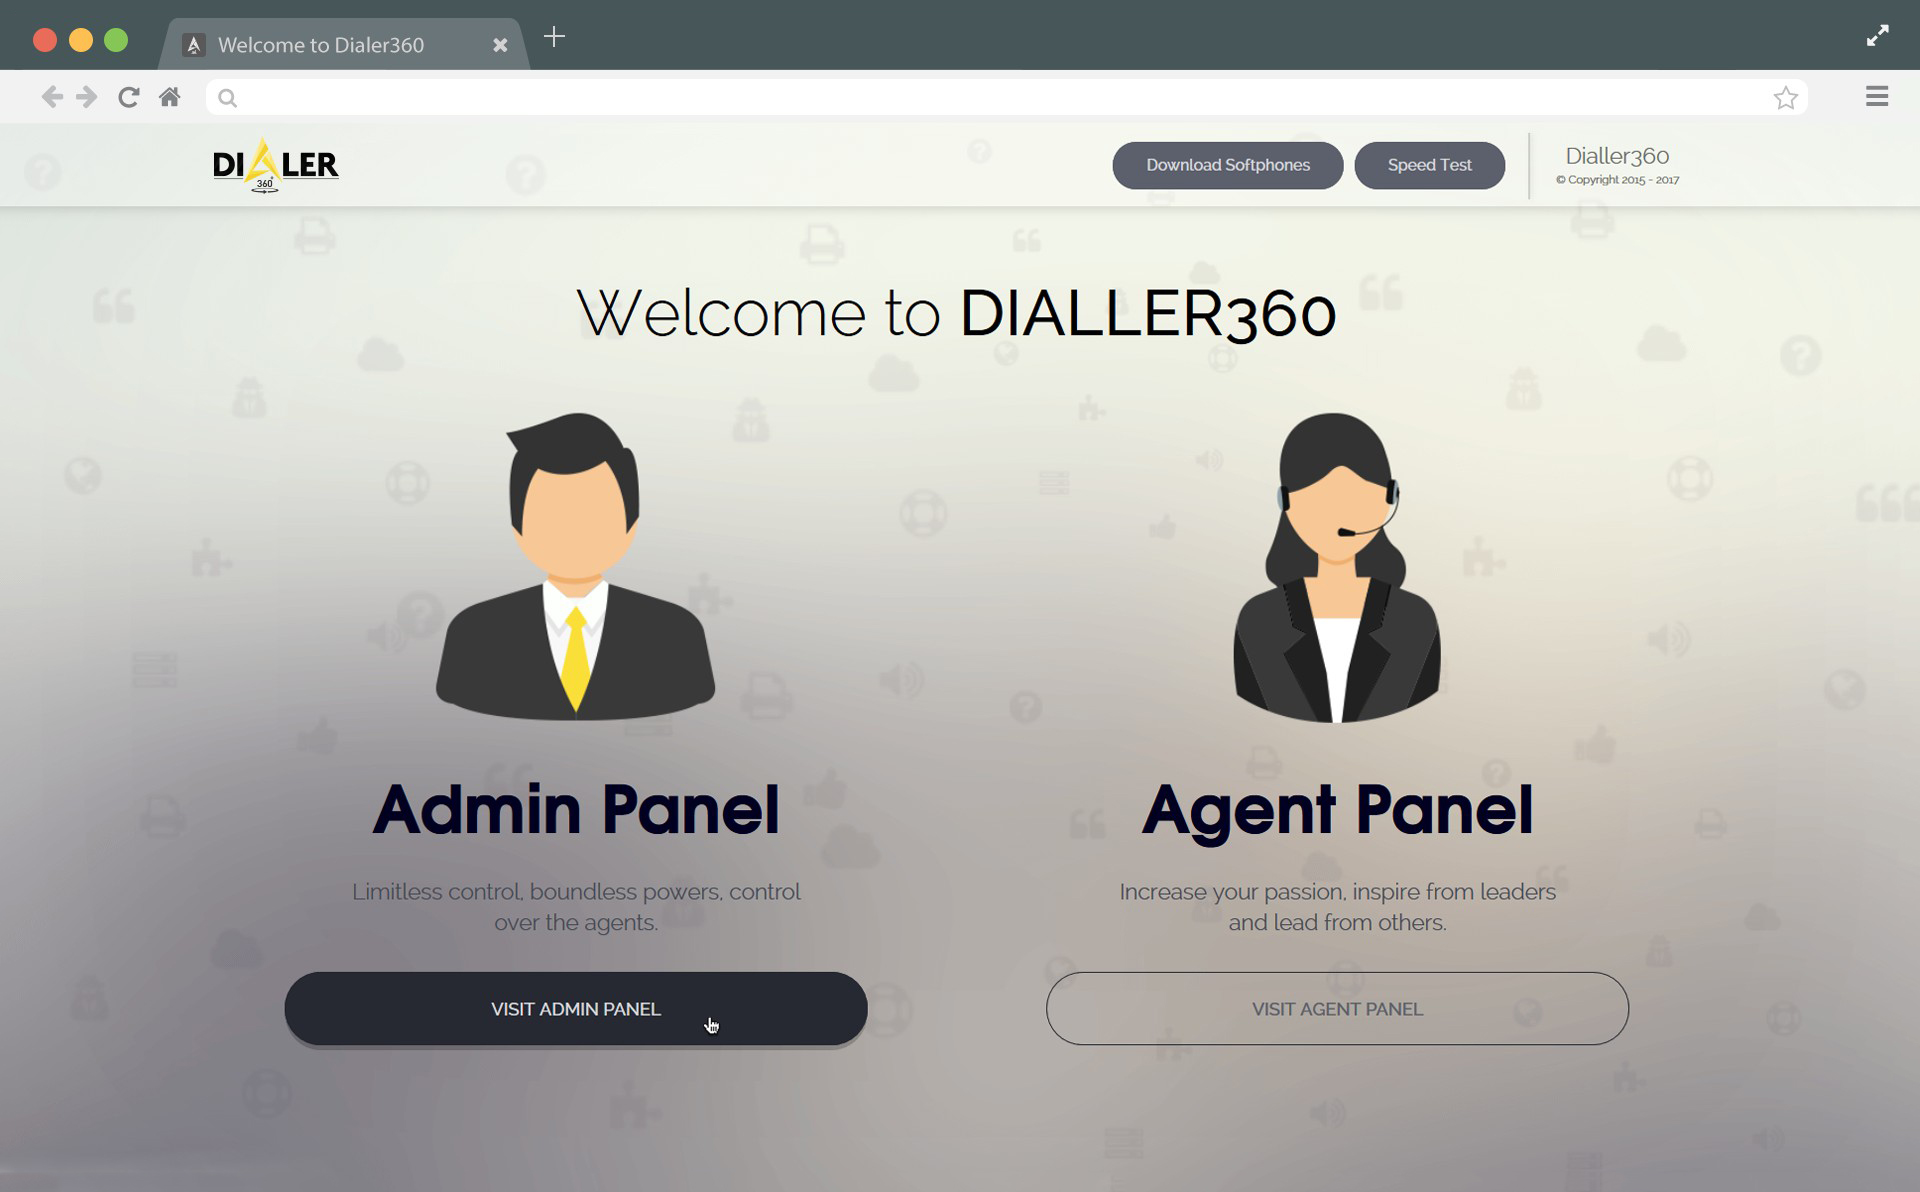 Separate logins for admin and agents